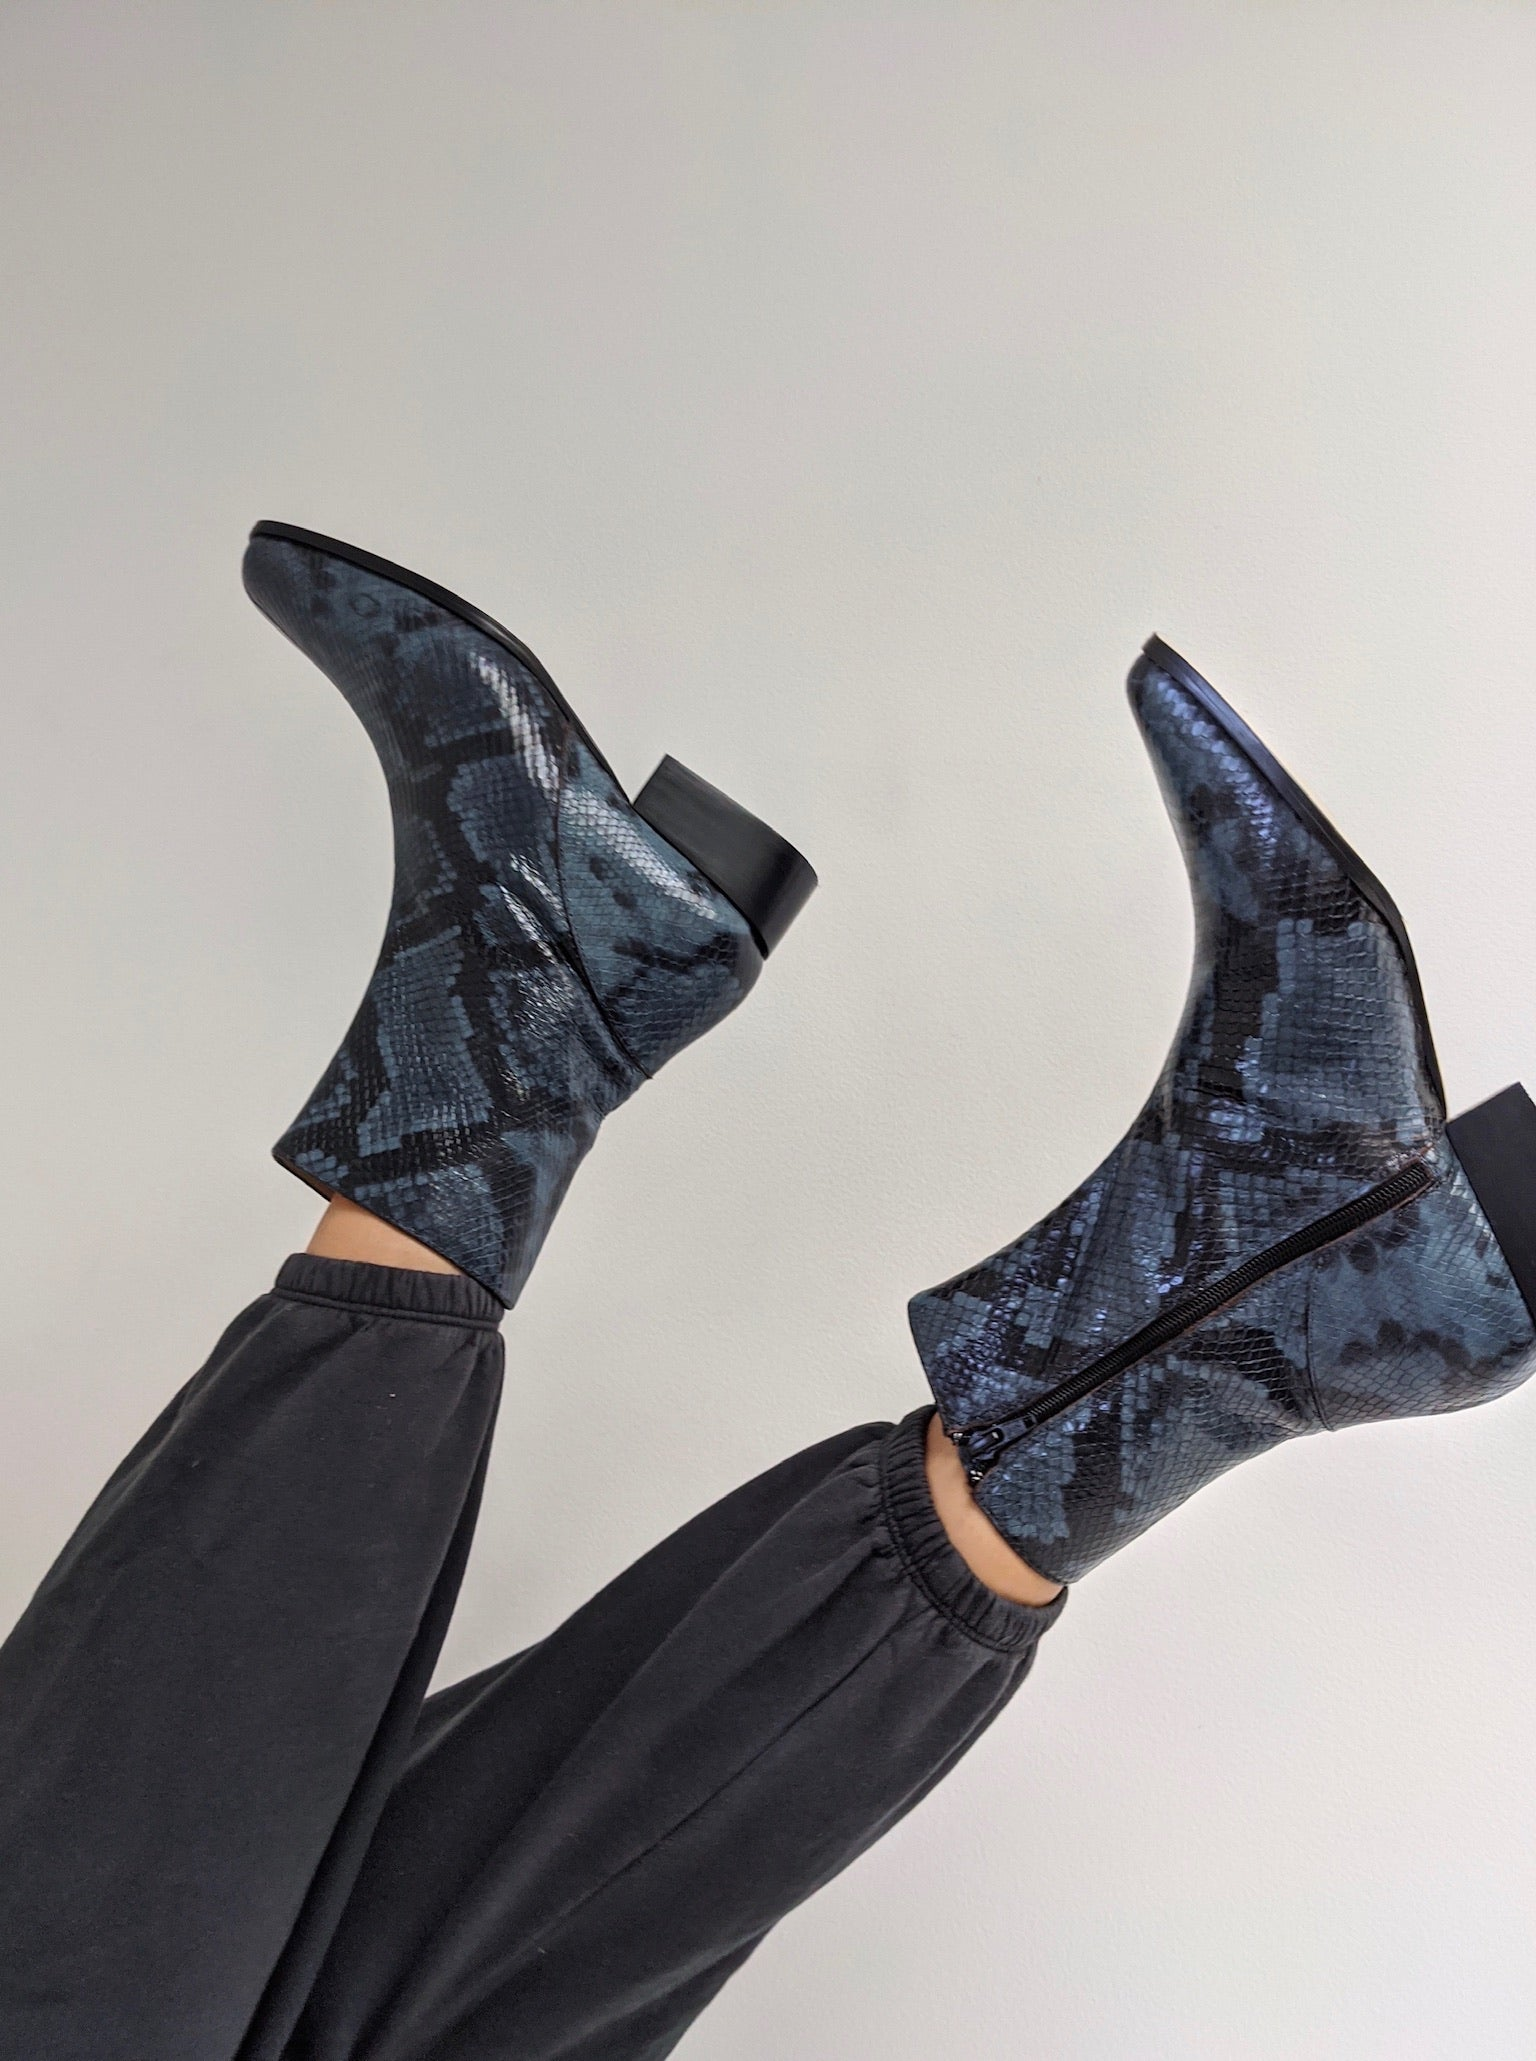 Paloma Wool Edna Boot / Available in Dark Navy